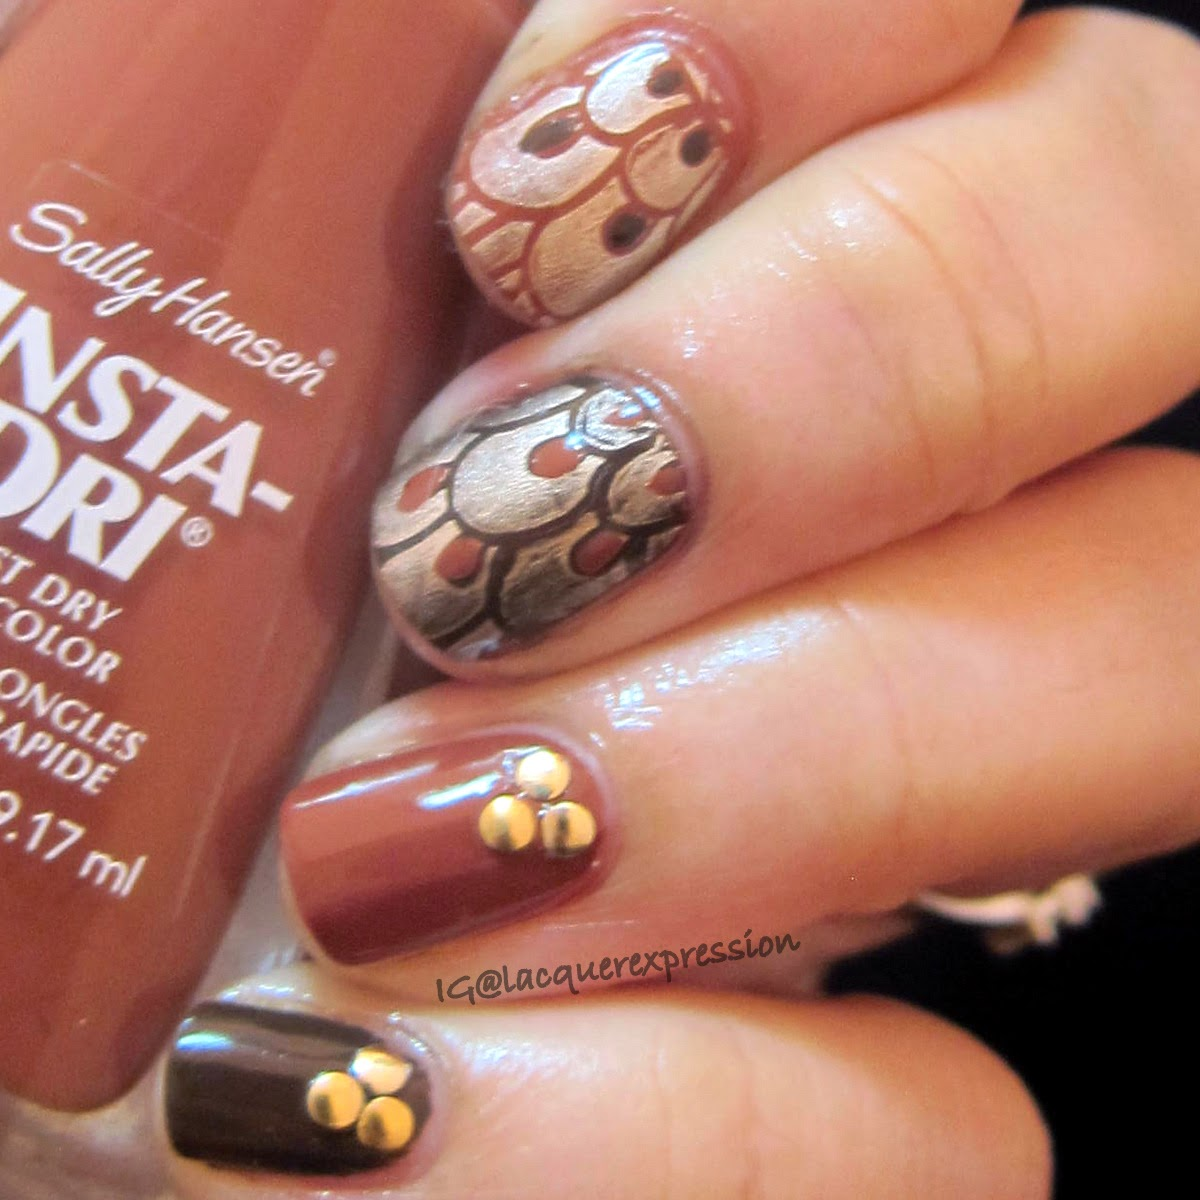 Thanksgiving Feathers nail art using sally hansen moracc-go nail polish